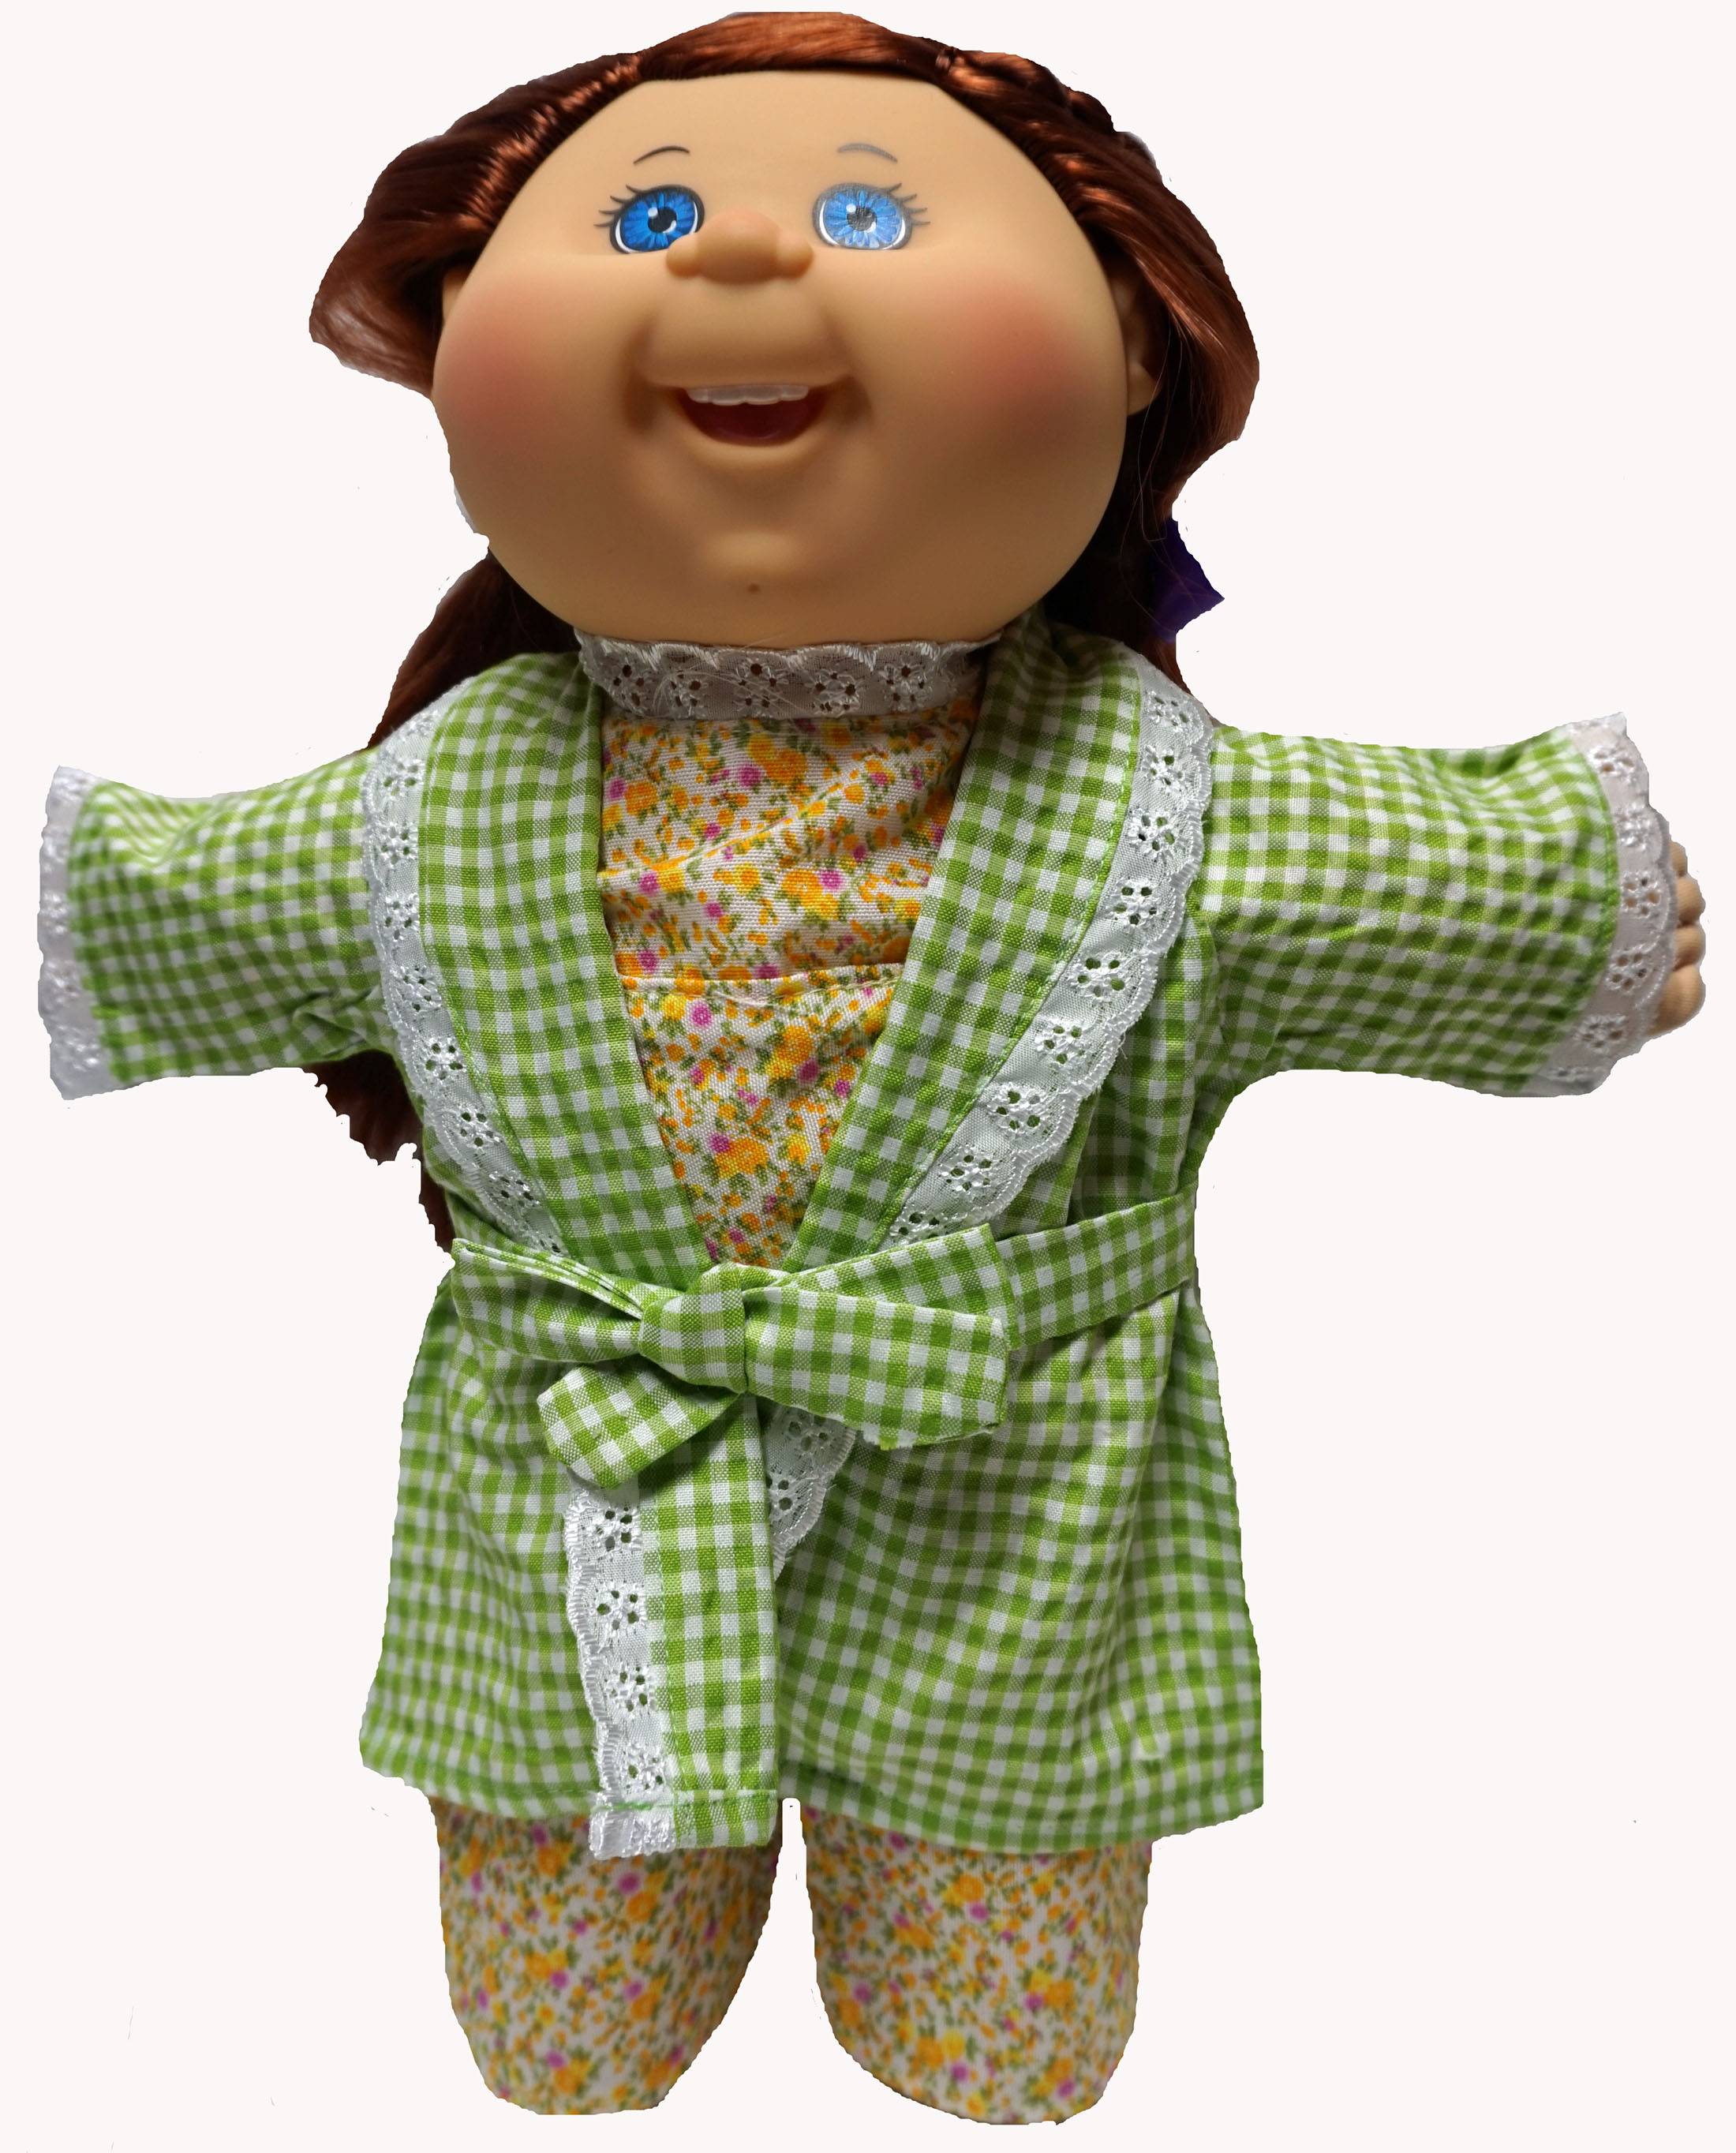 Pajamas And Bathrobe Fits 14 And 16 Inch Cabbage Patch Kid Dolls by Doll Clothes Superstore